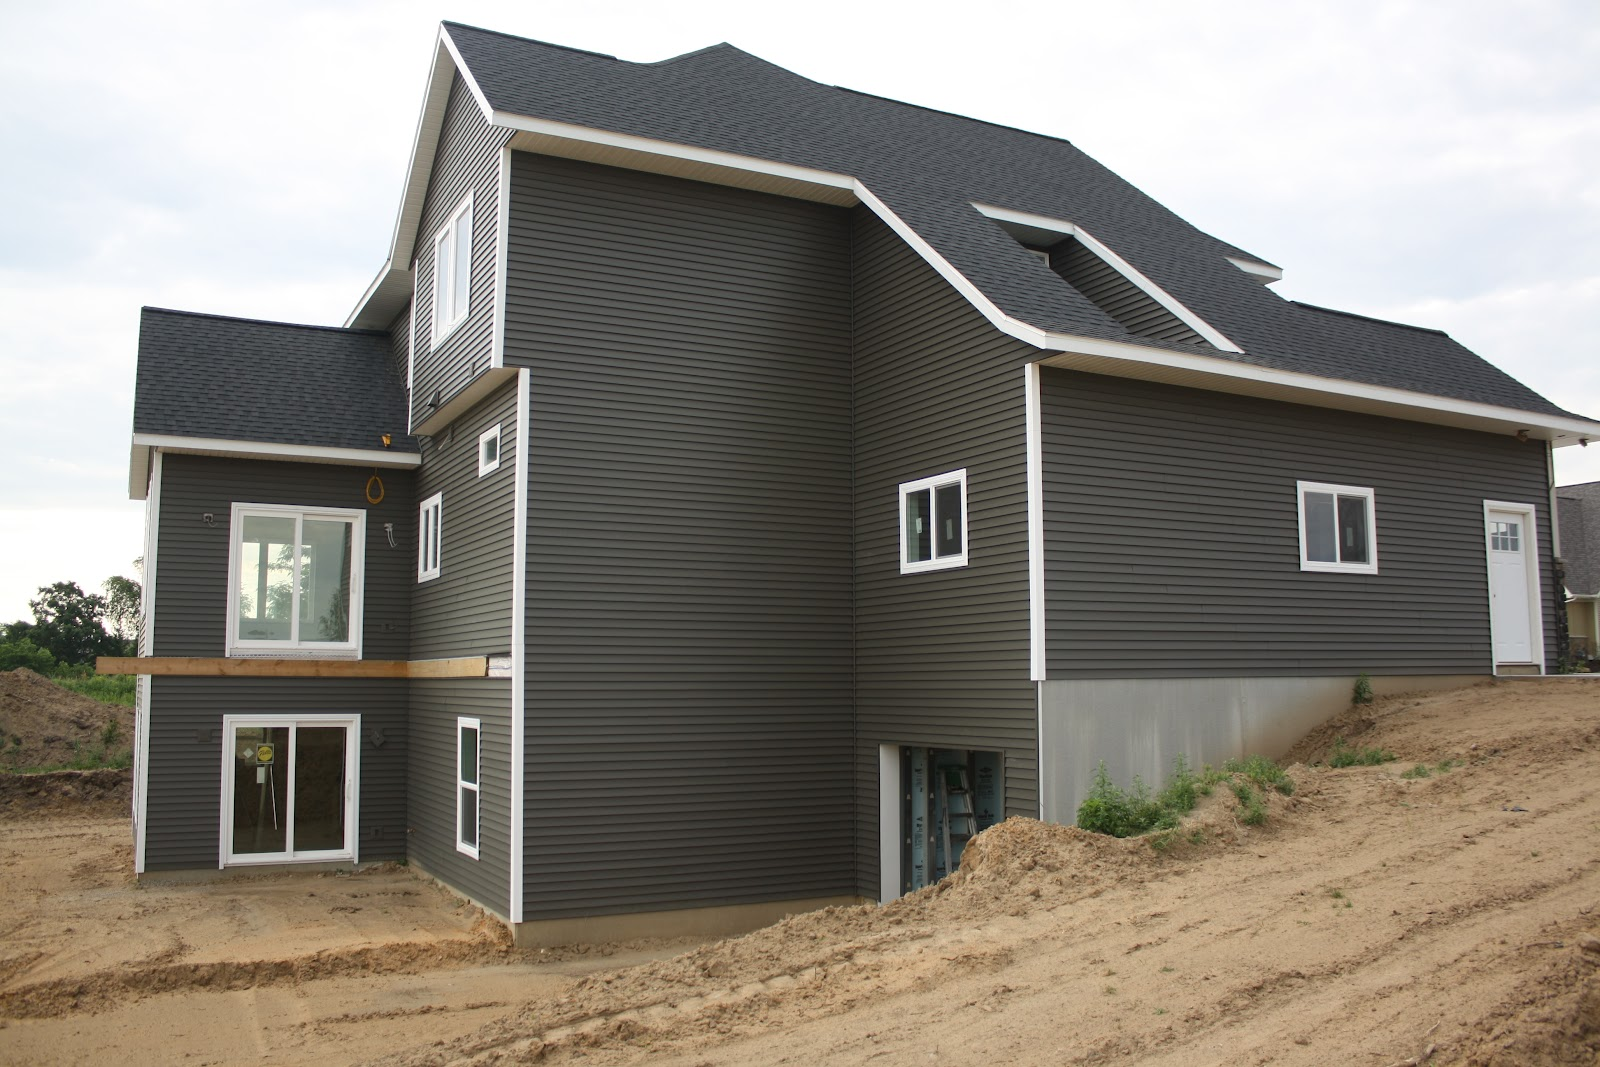 House on tufton the build exterior stone siding and for Exterior siding design